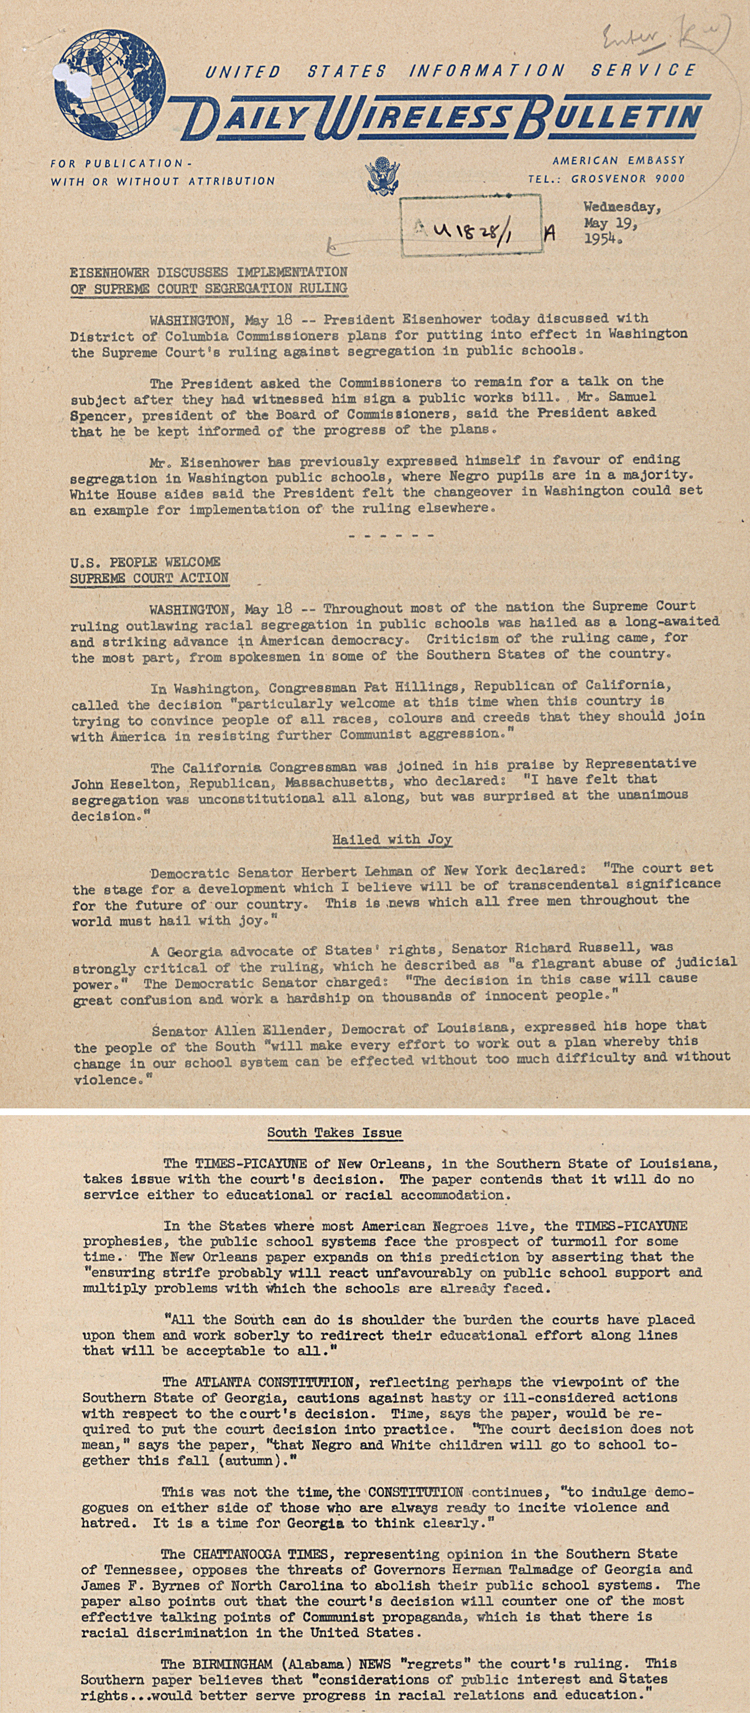 Daily Bulletin from US Embassy in London, 19 May 1954 (FO 371/109162)